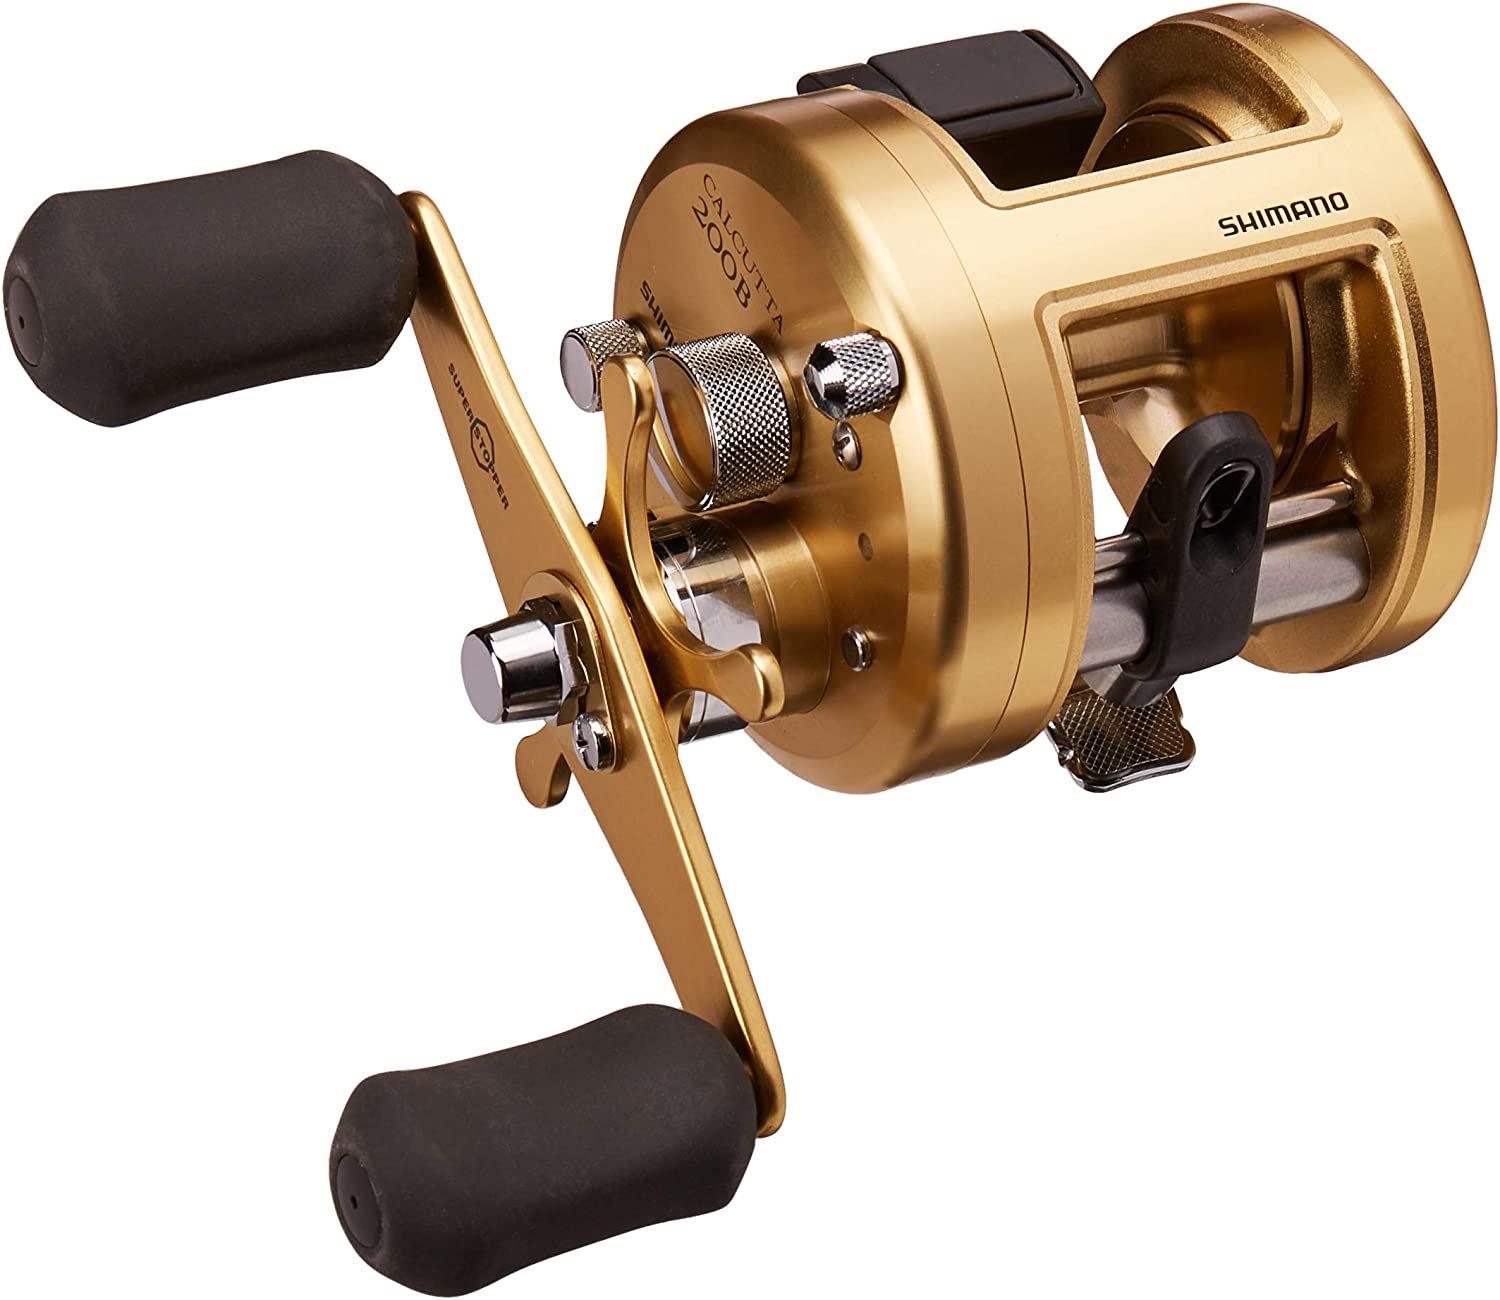 best musky reel: SHIMANO Calcutta Fishing Reel